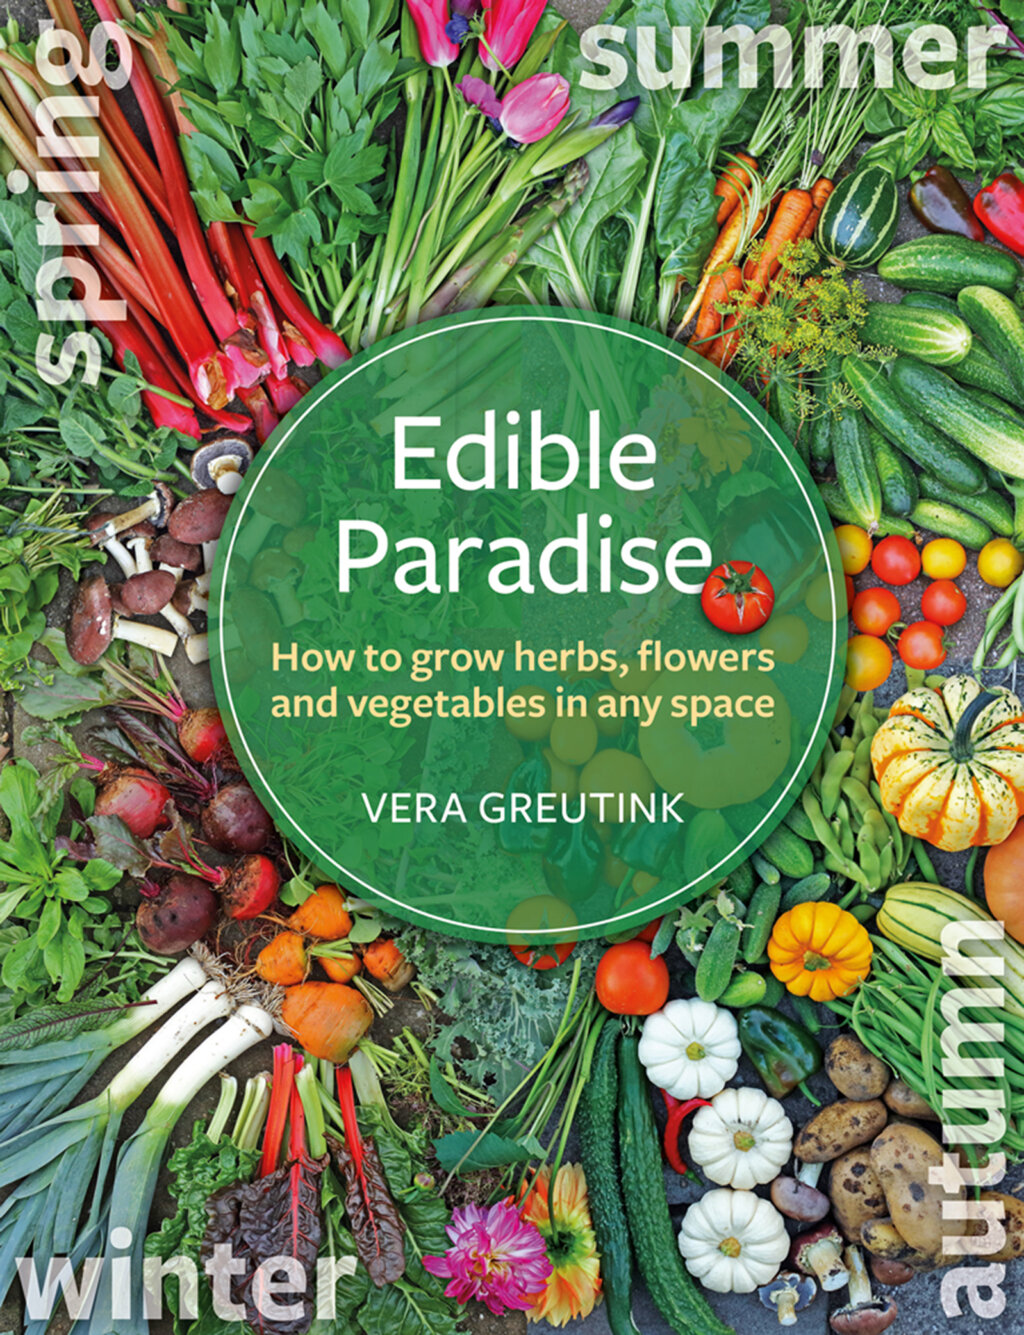 The Edible Paradise cover